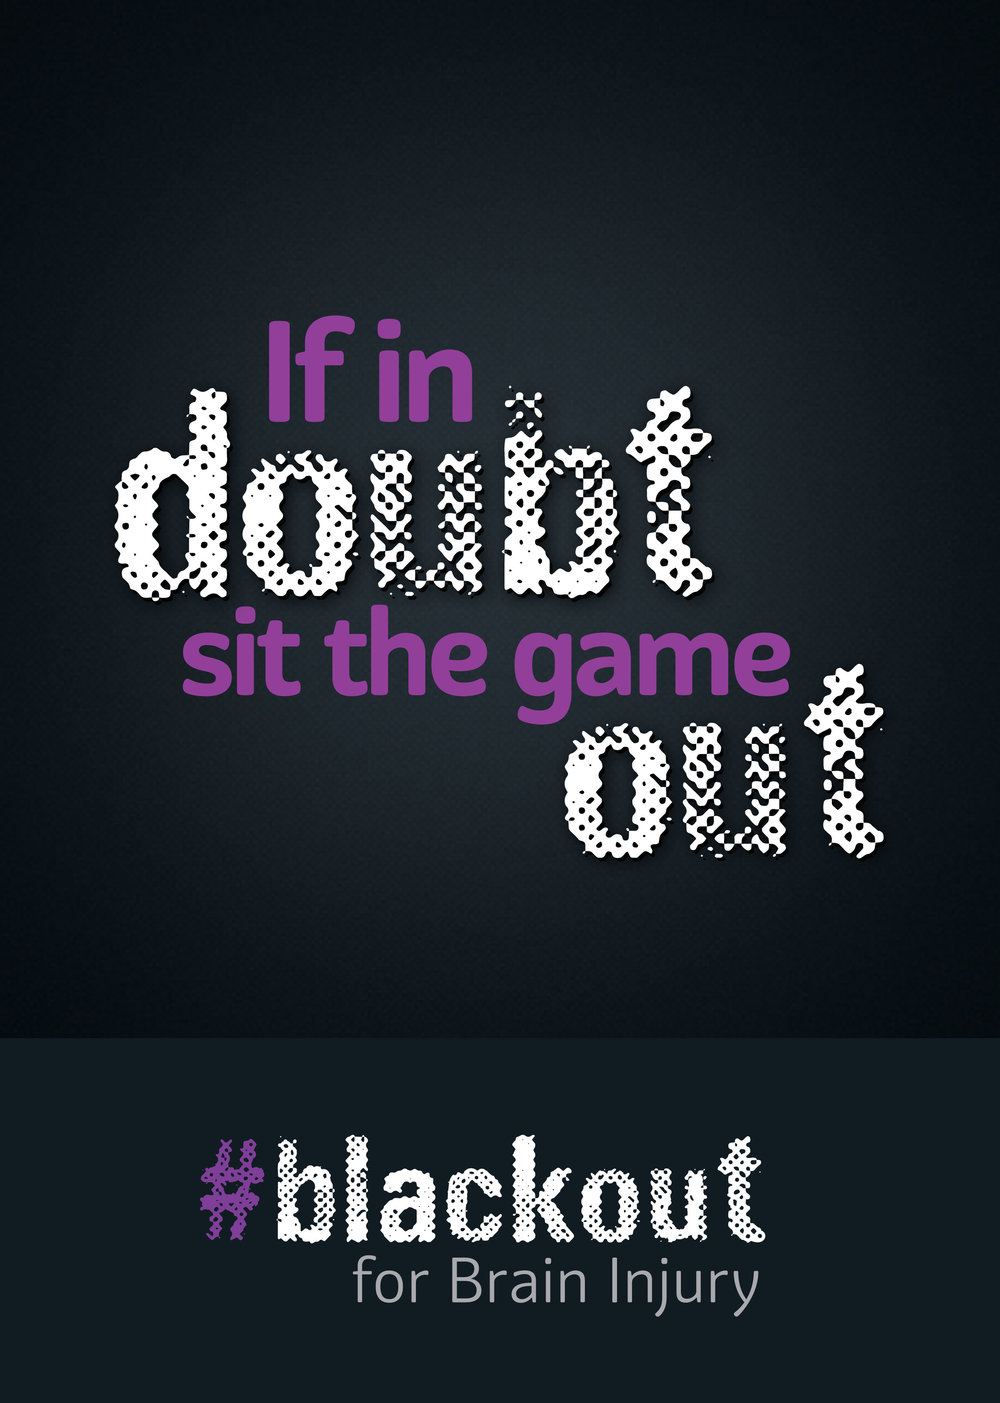 Blackout posters-3.jpg